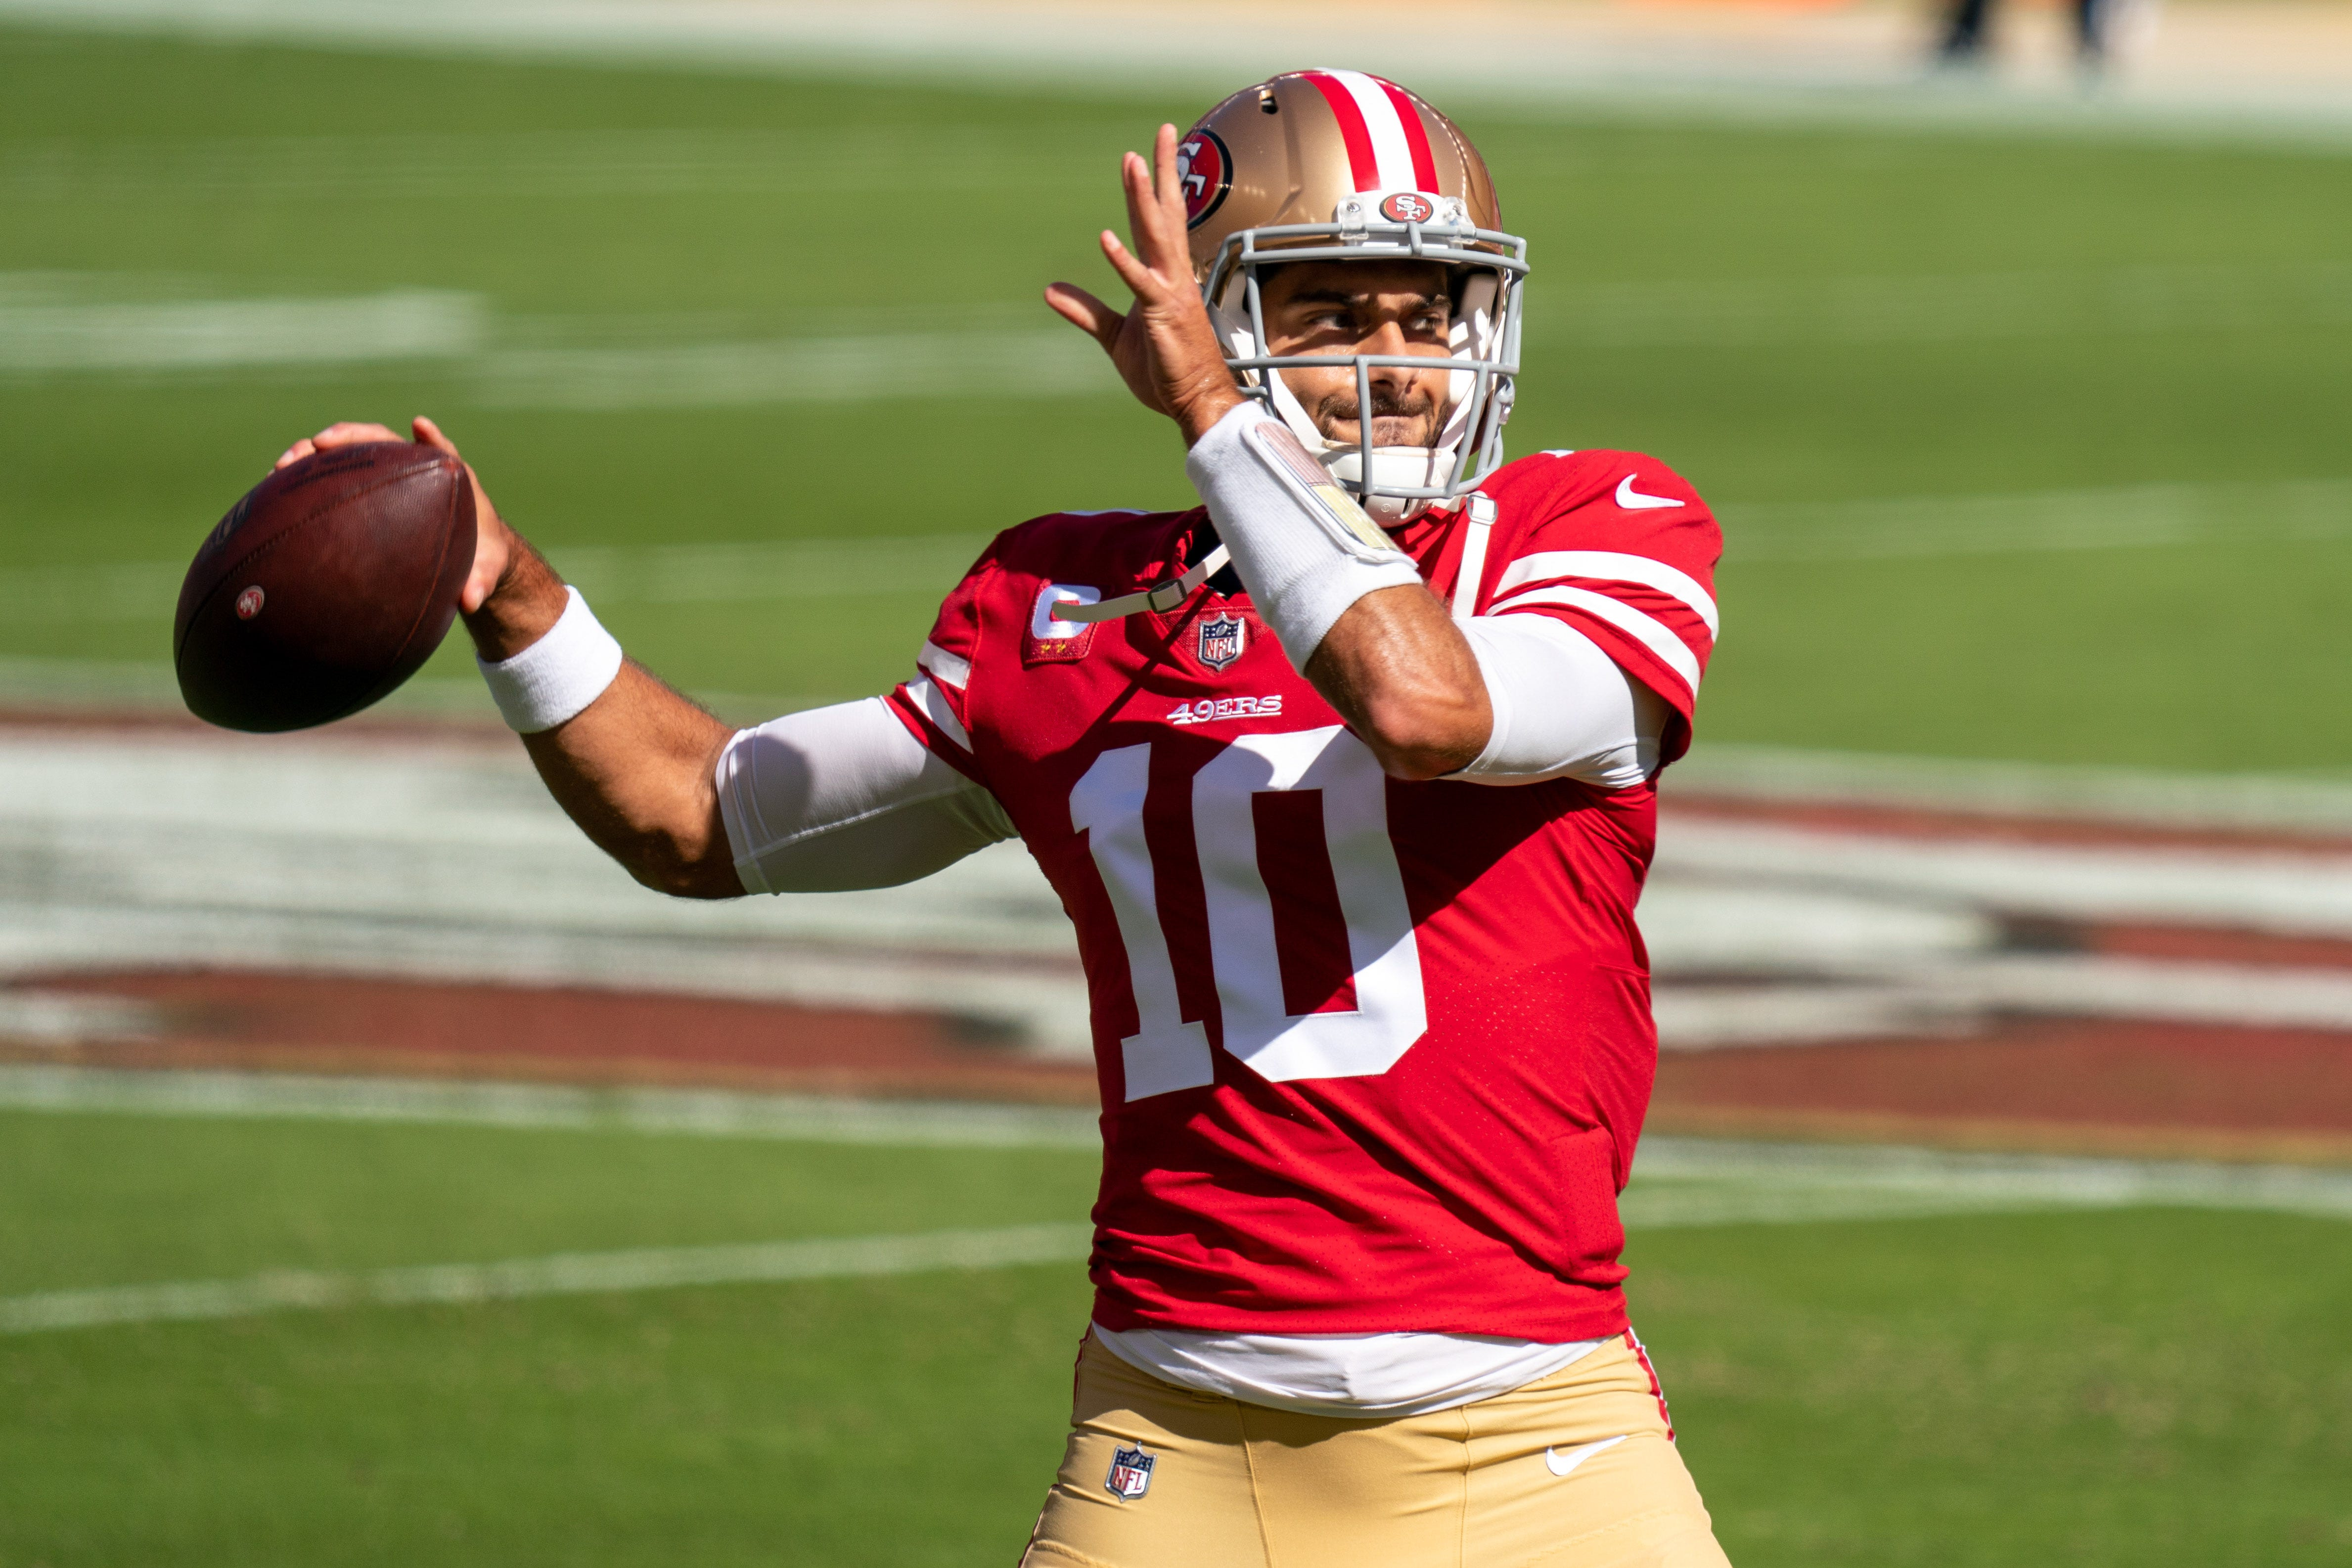 Patriots-49ers preview: 3 keys to the game, fun facts, prediction